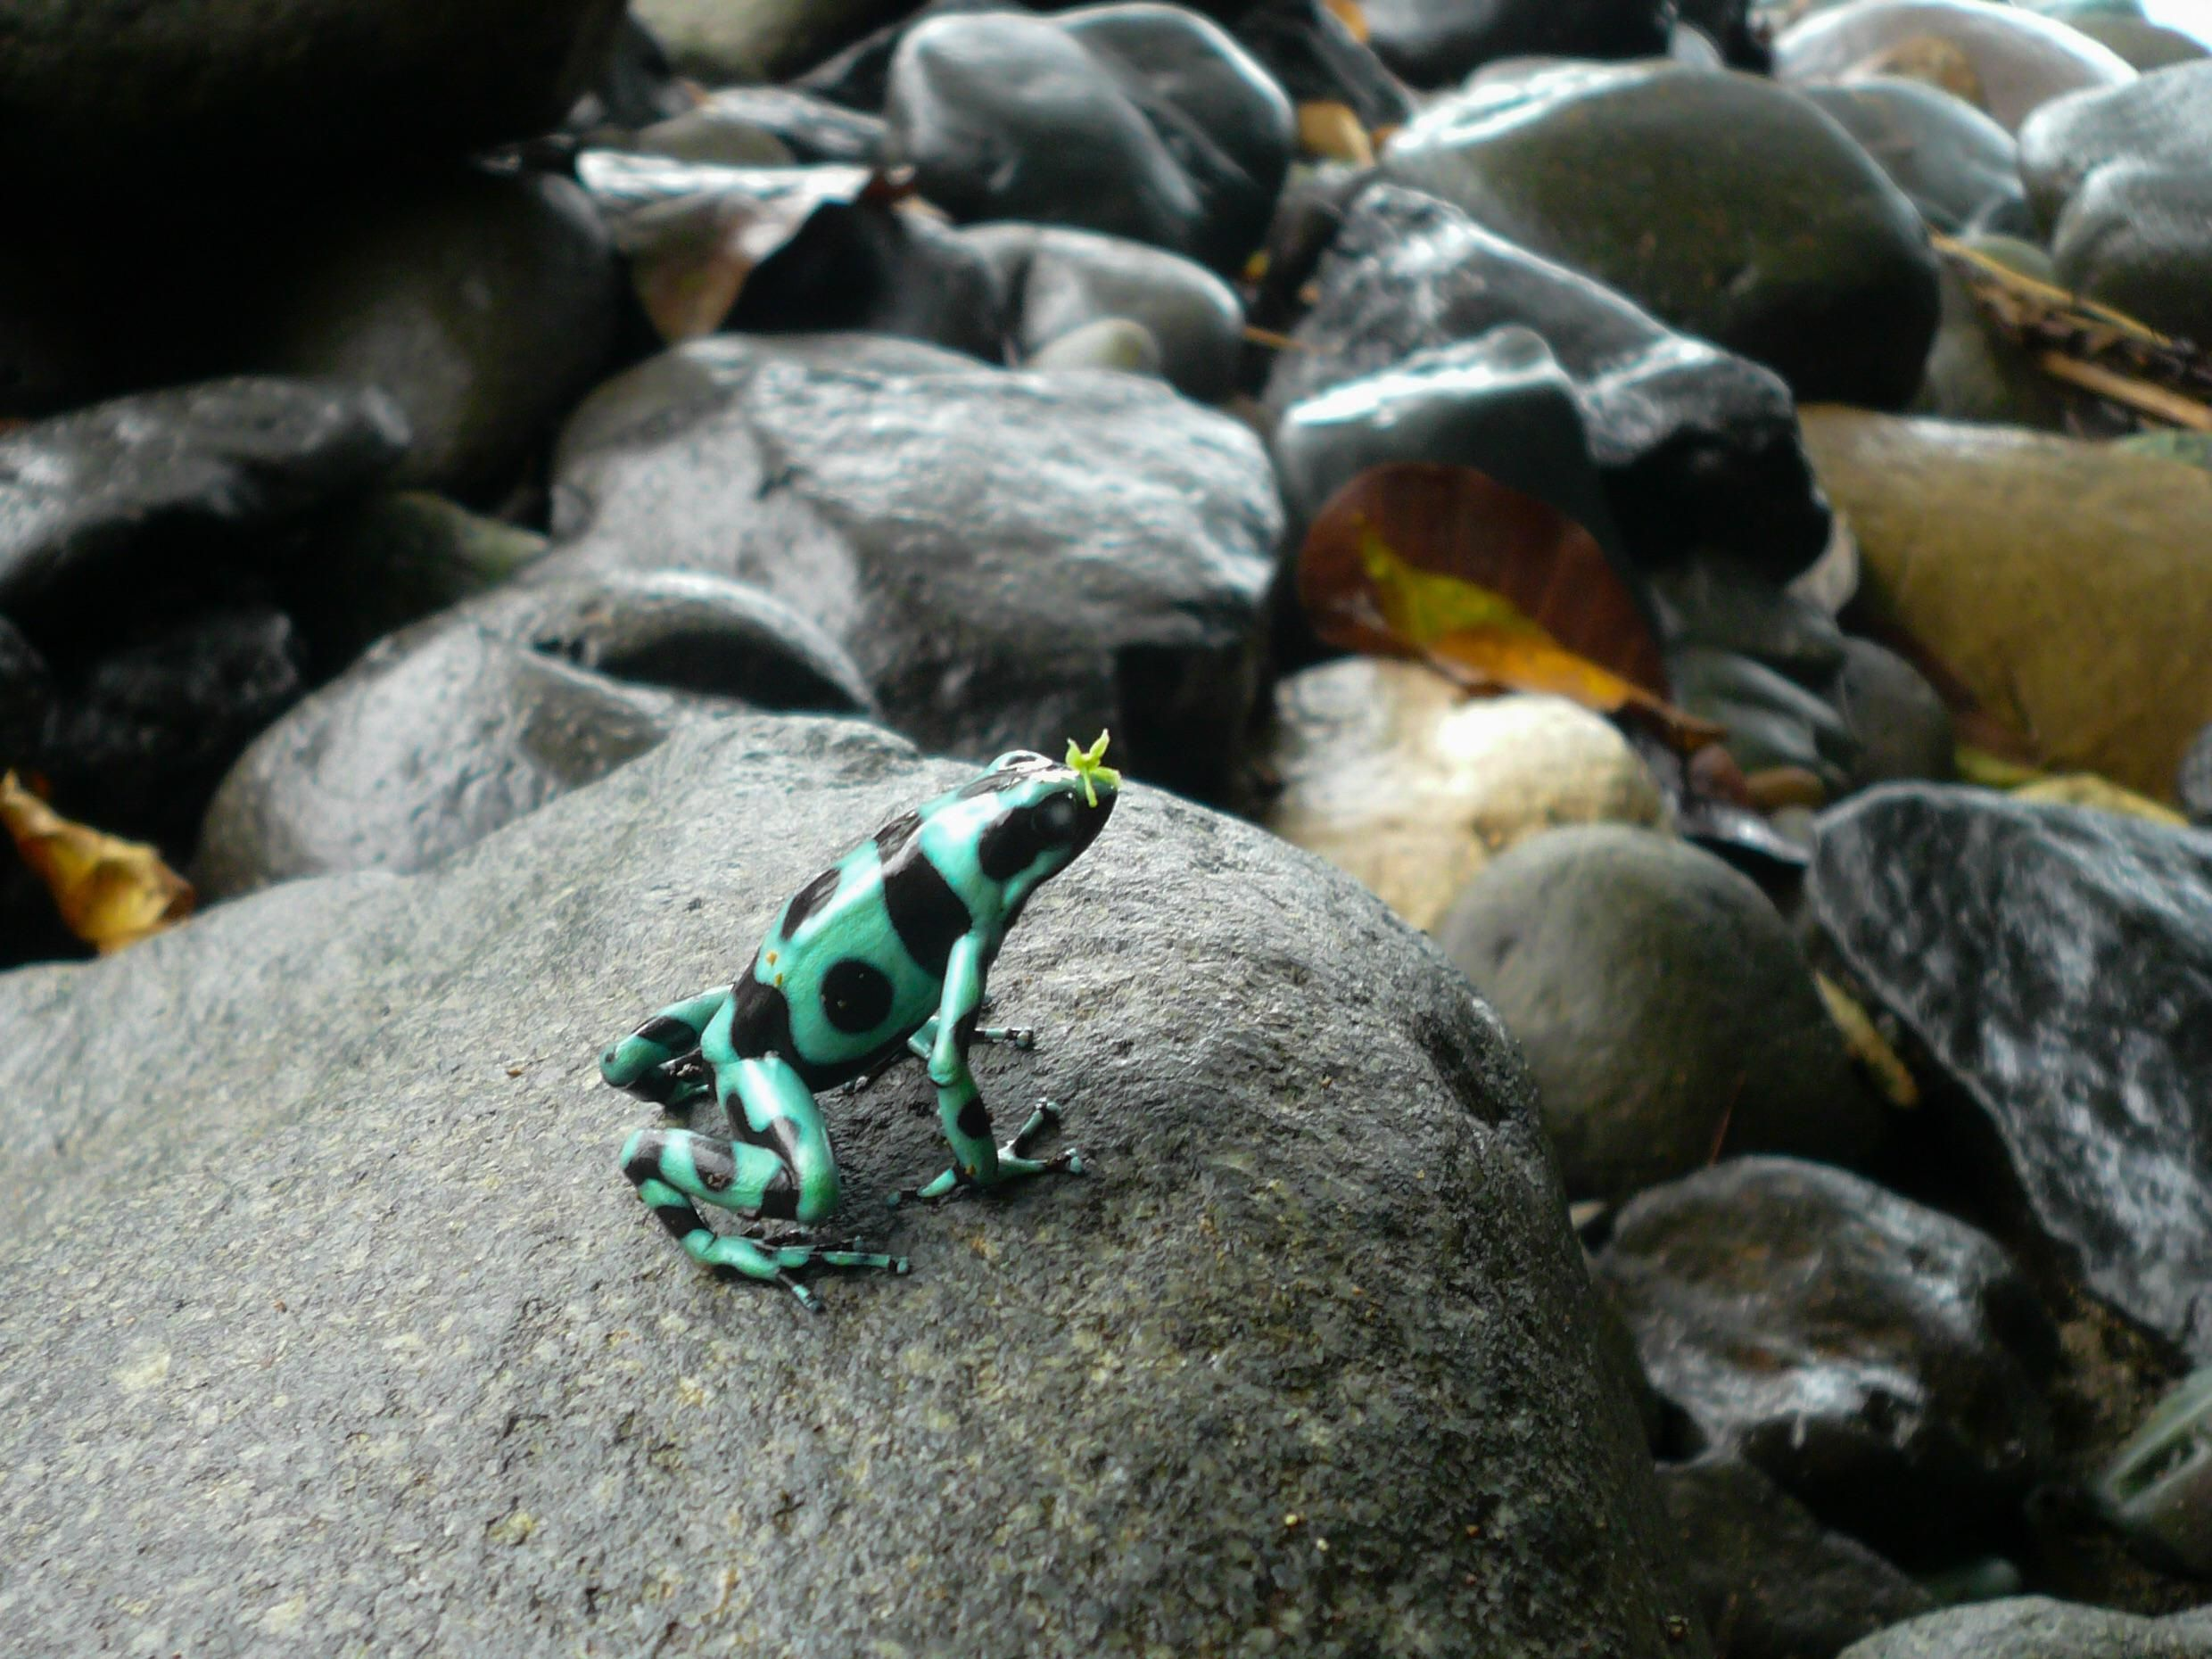 Saw this guy while hiking in Costa Rica http://ift.tt/2nP9OSh